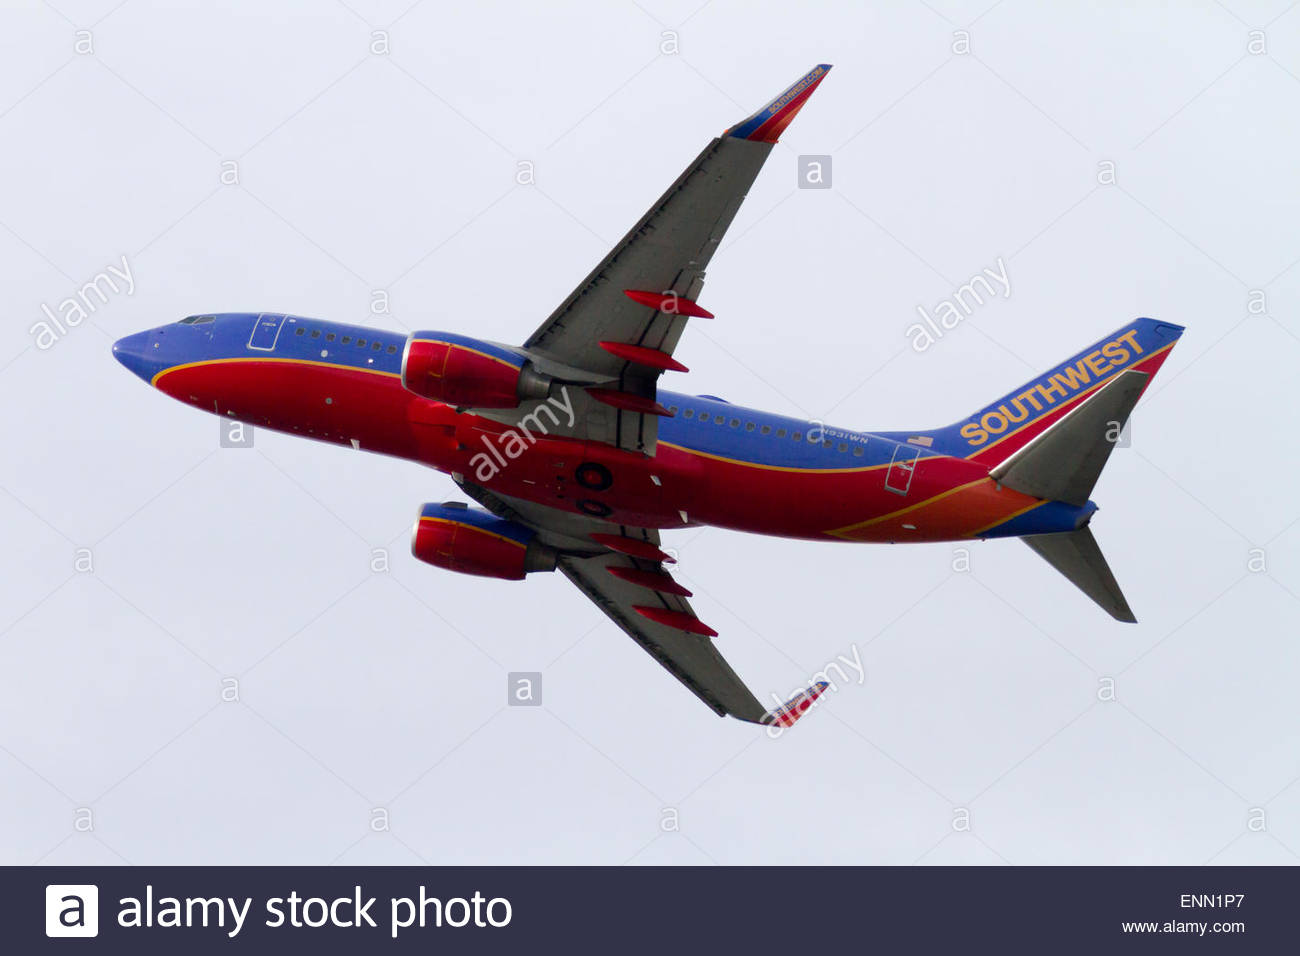 93adc60dfc2b A Southwest Airlines 737 is seen taking off from Seattle-Tacoma  International Airport - Stock